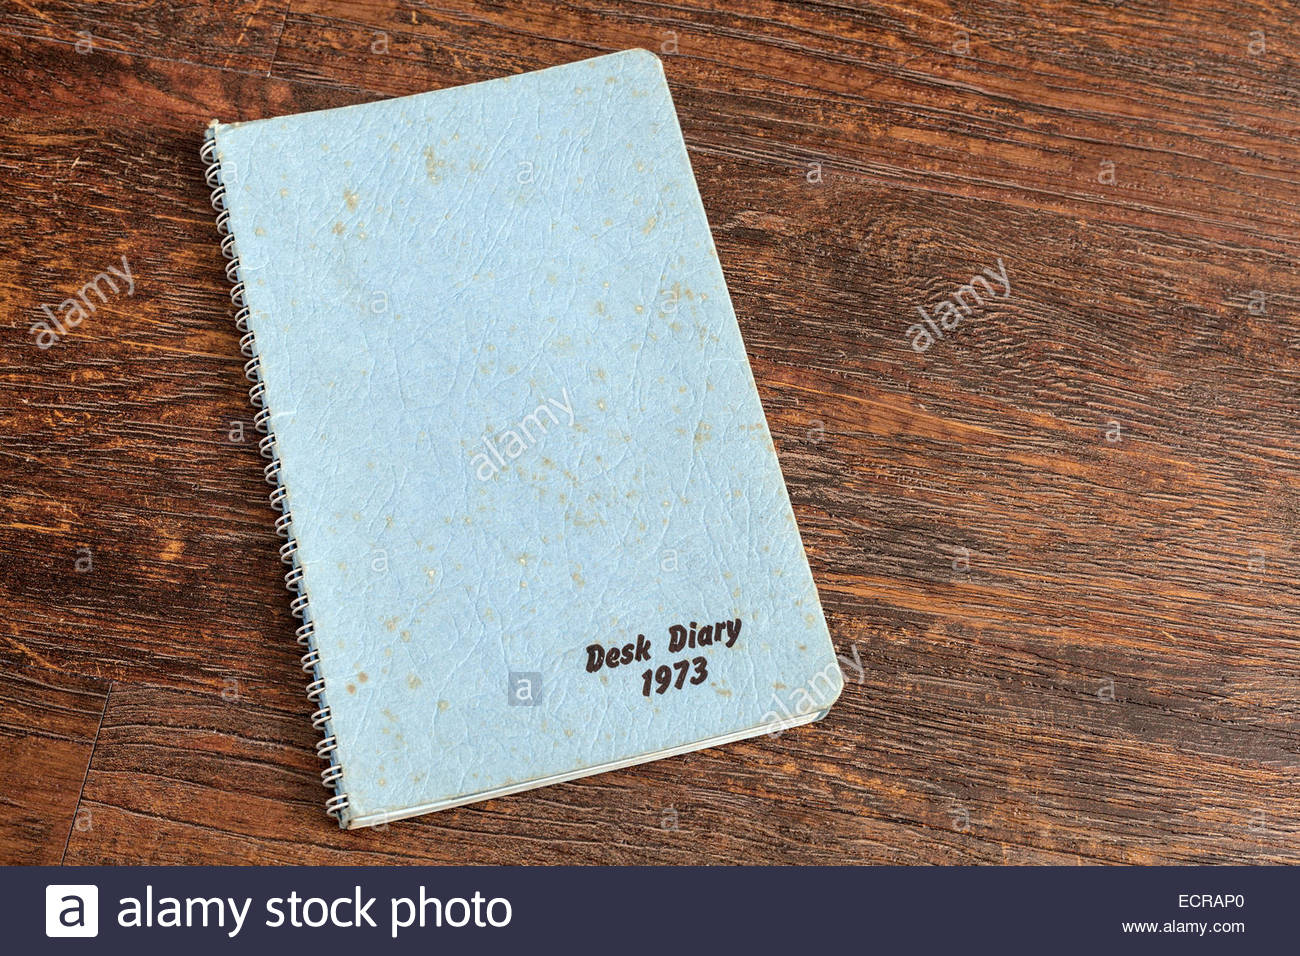 Wire Bound Stock Photos & Wire Bound Stock Images - Alamy